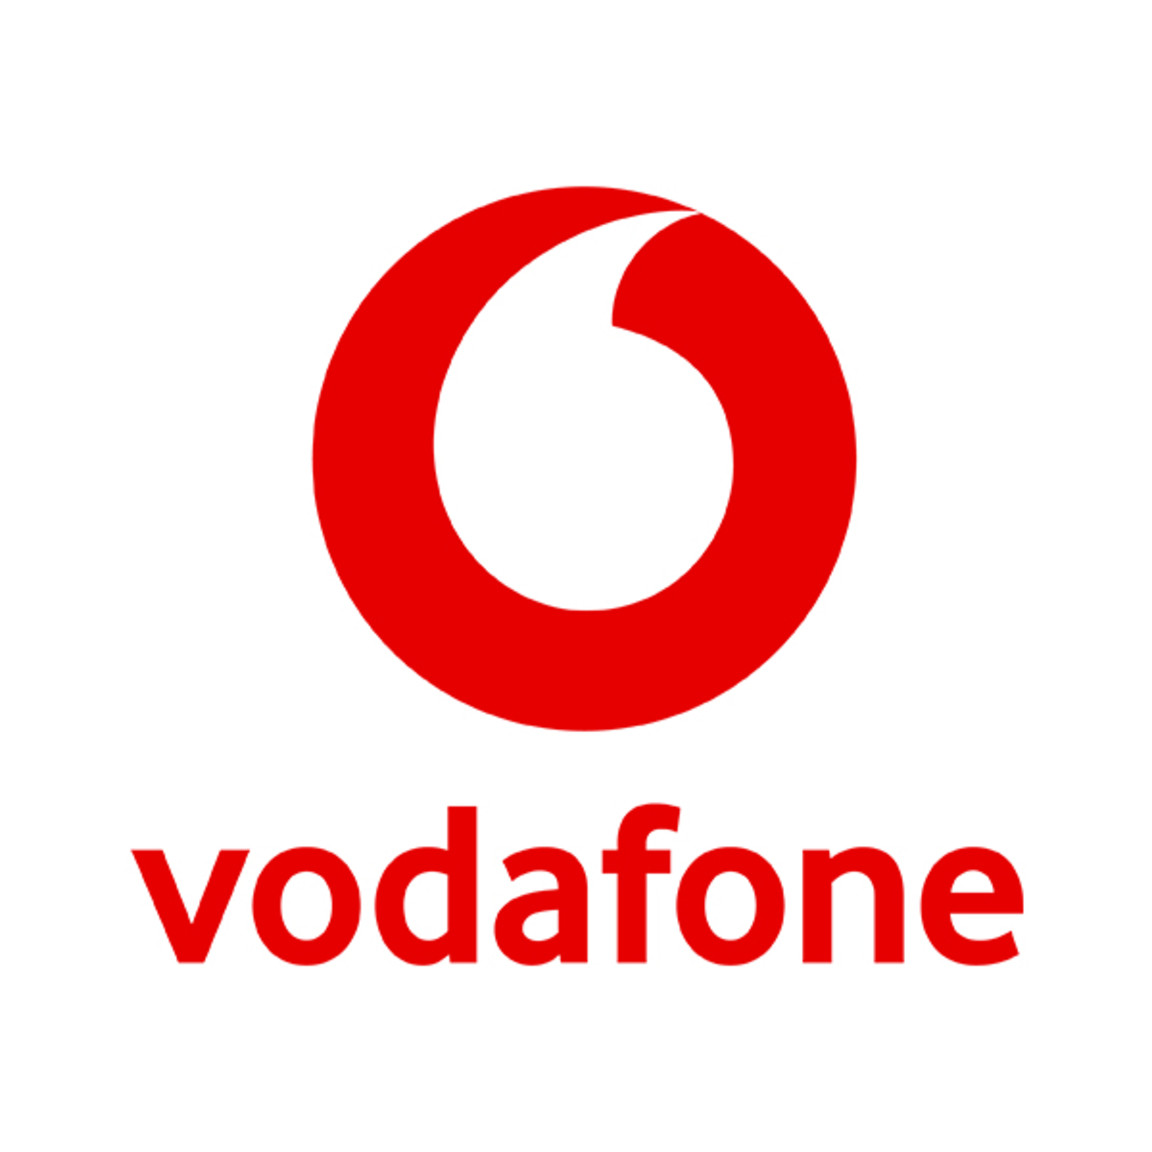 Vodafone at Westfield Carindal...